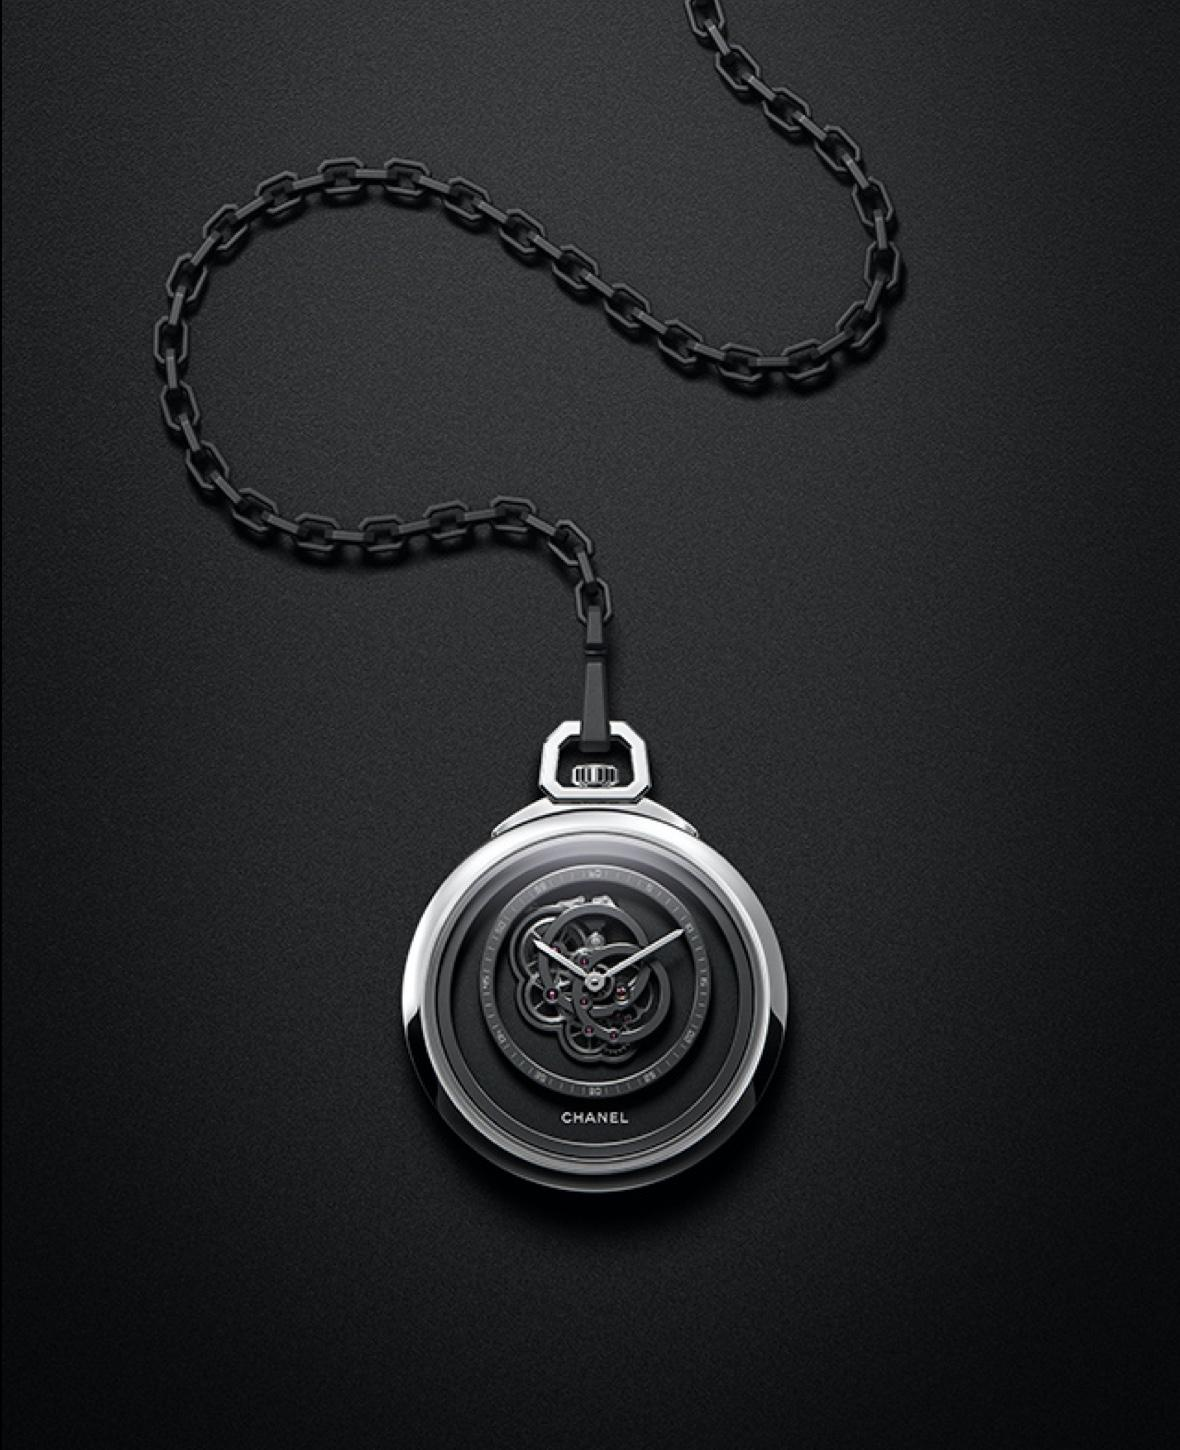 H5822 SPECIAL-EDITION MONSIEUR pocket watch additional view